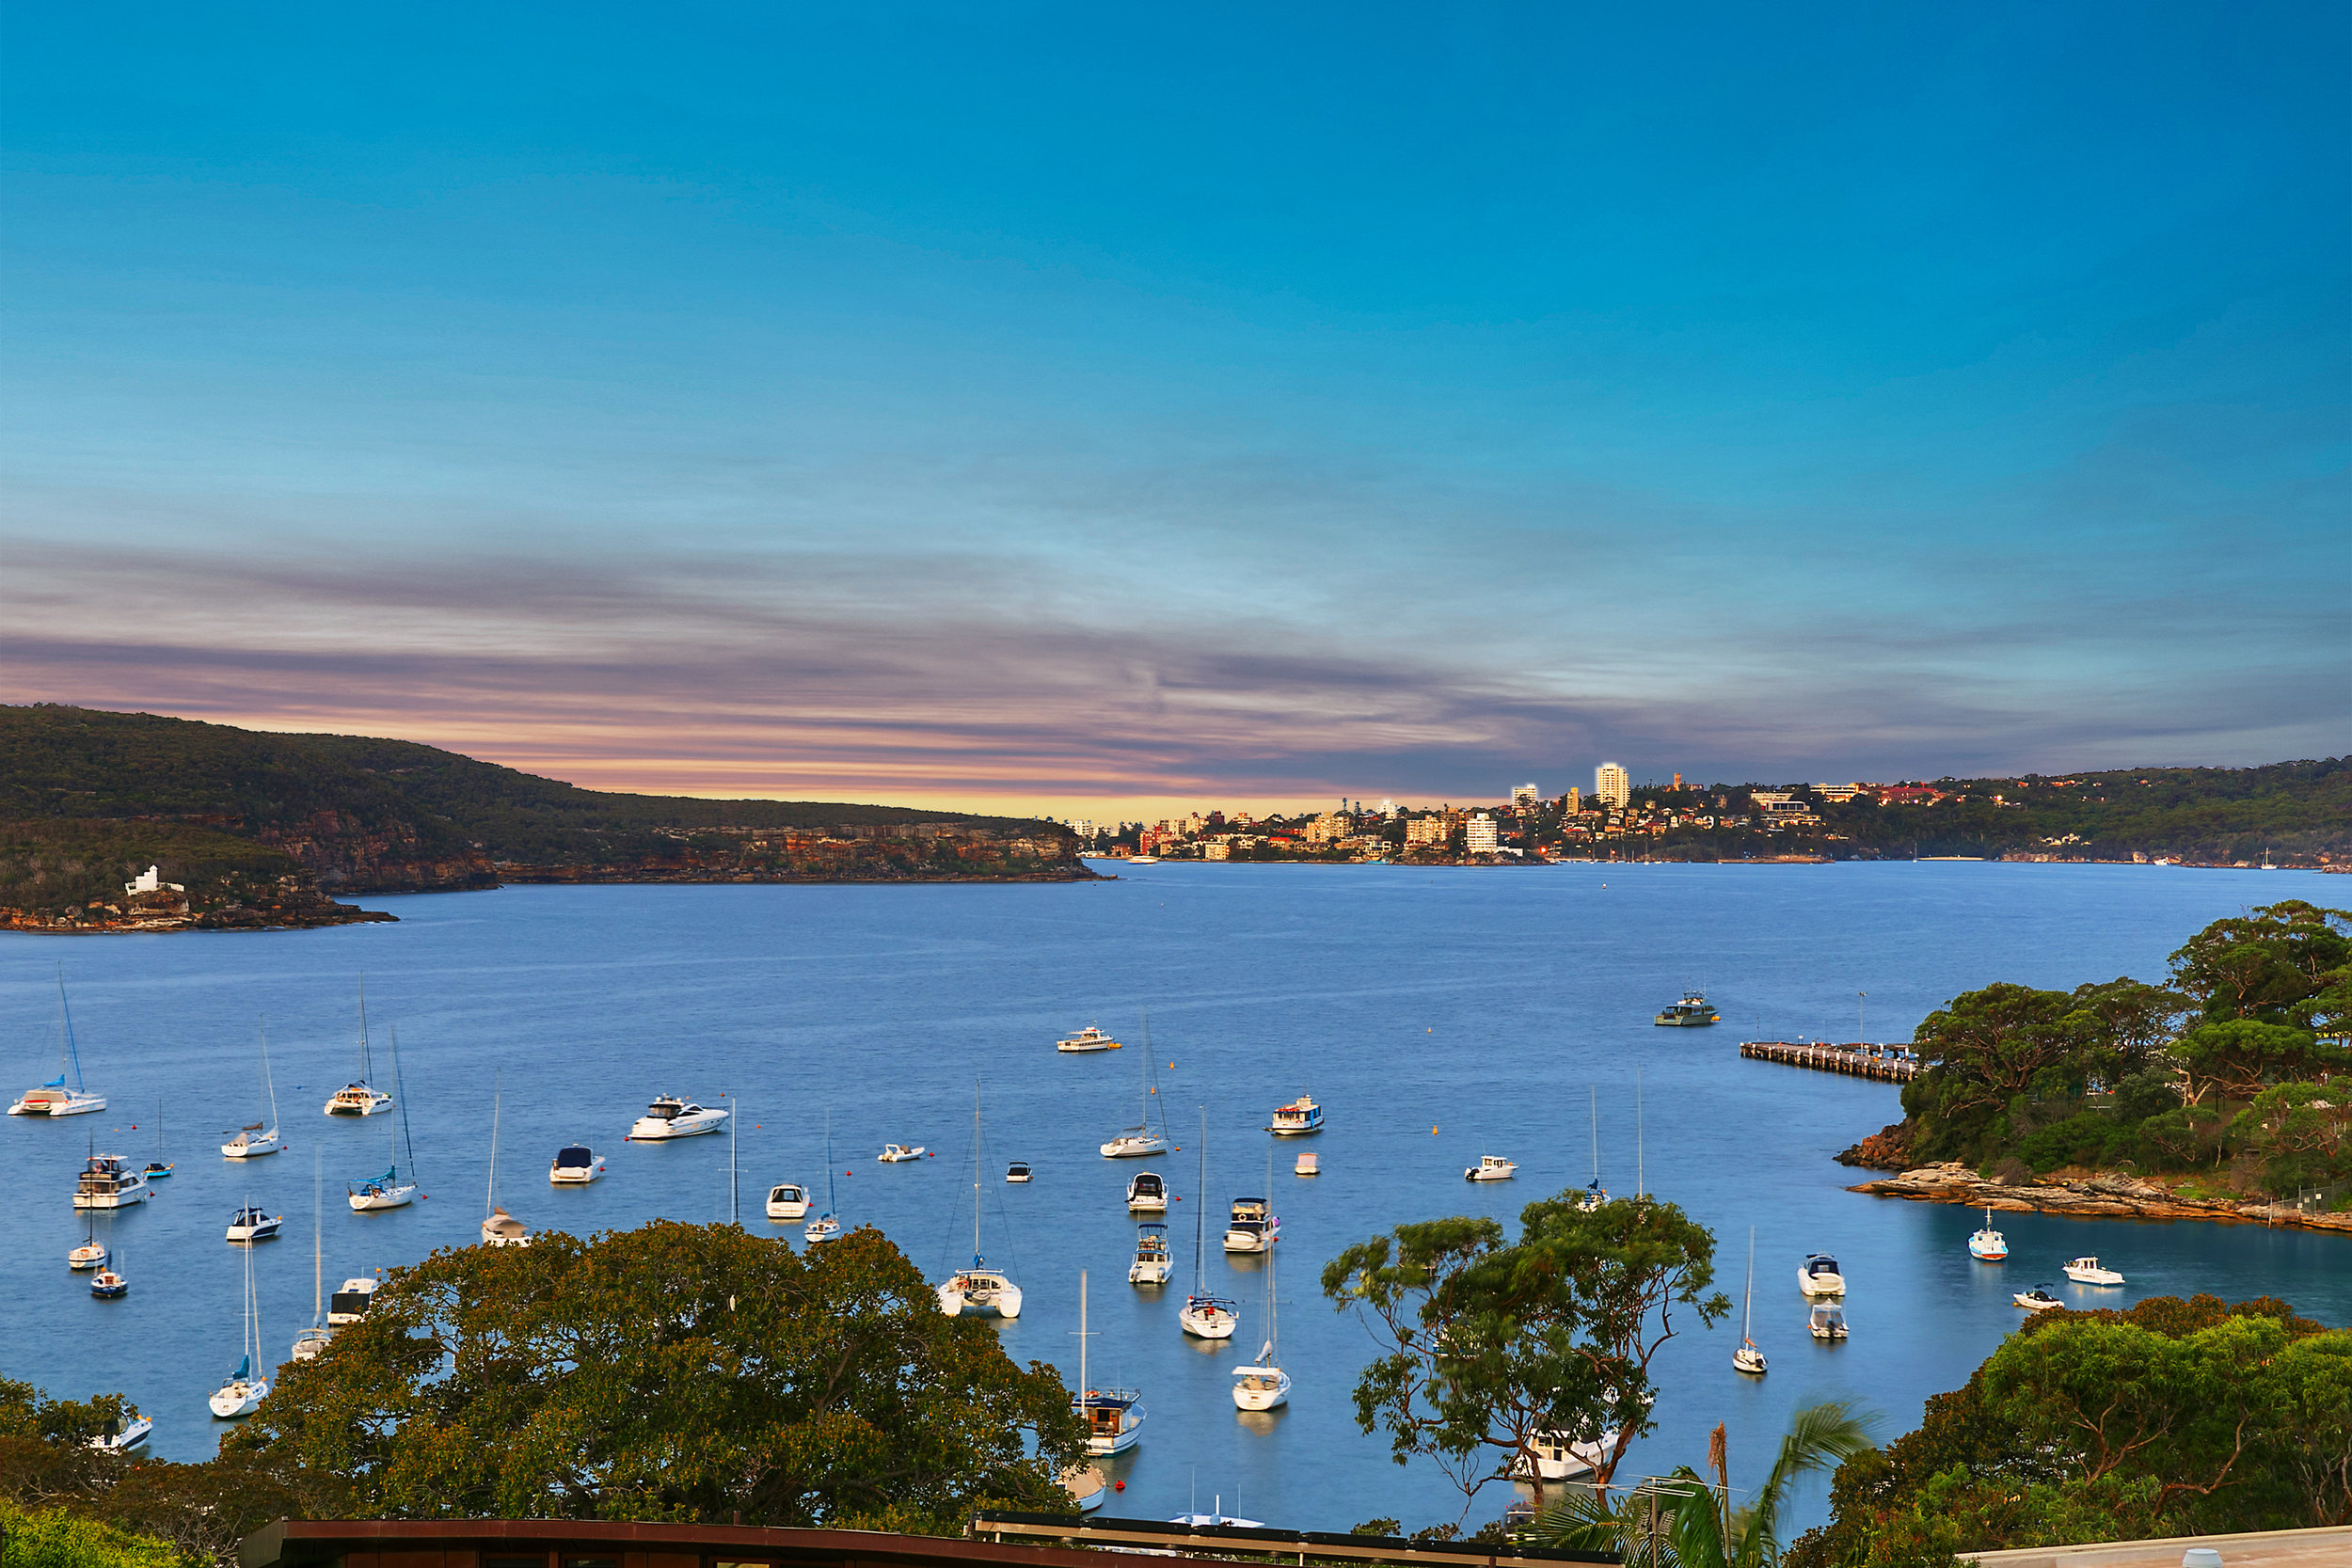 The spectacular view from 9 Plunkett Rd, Mosman.